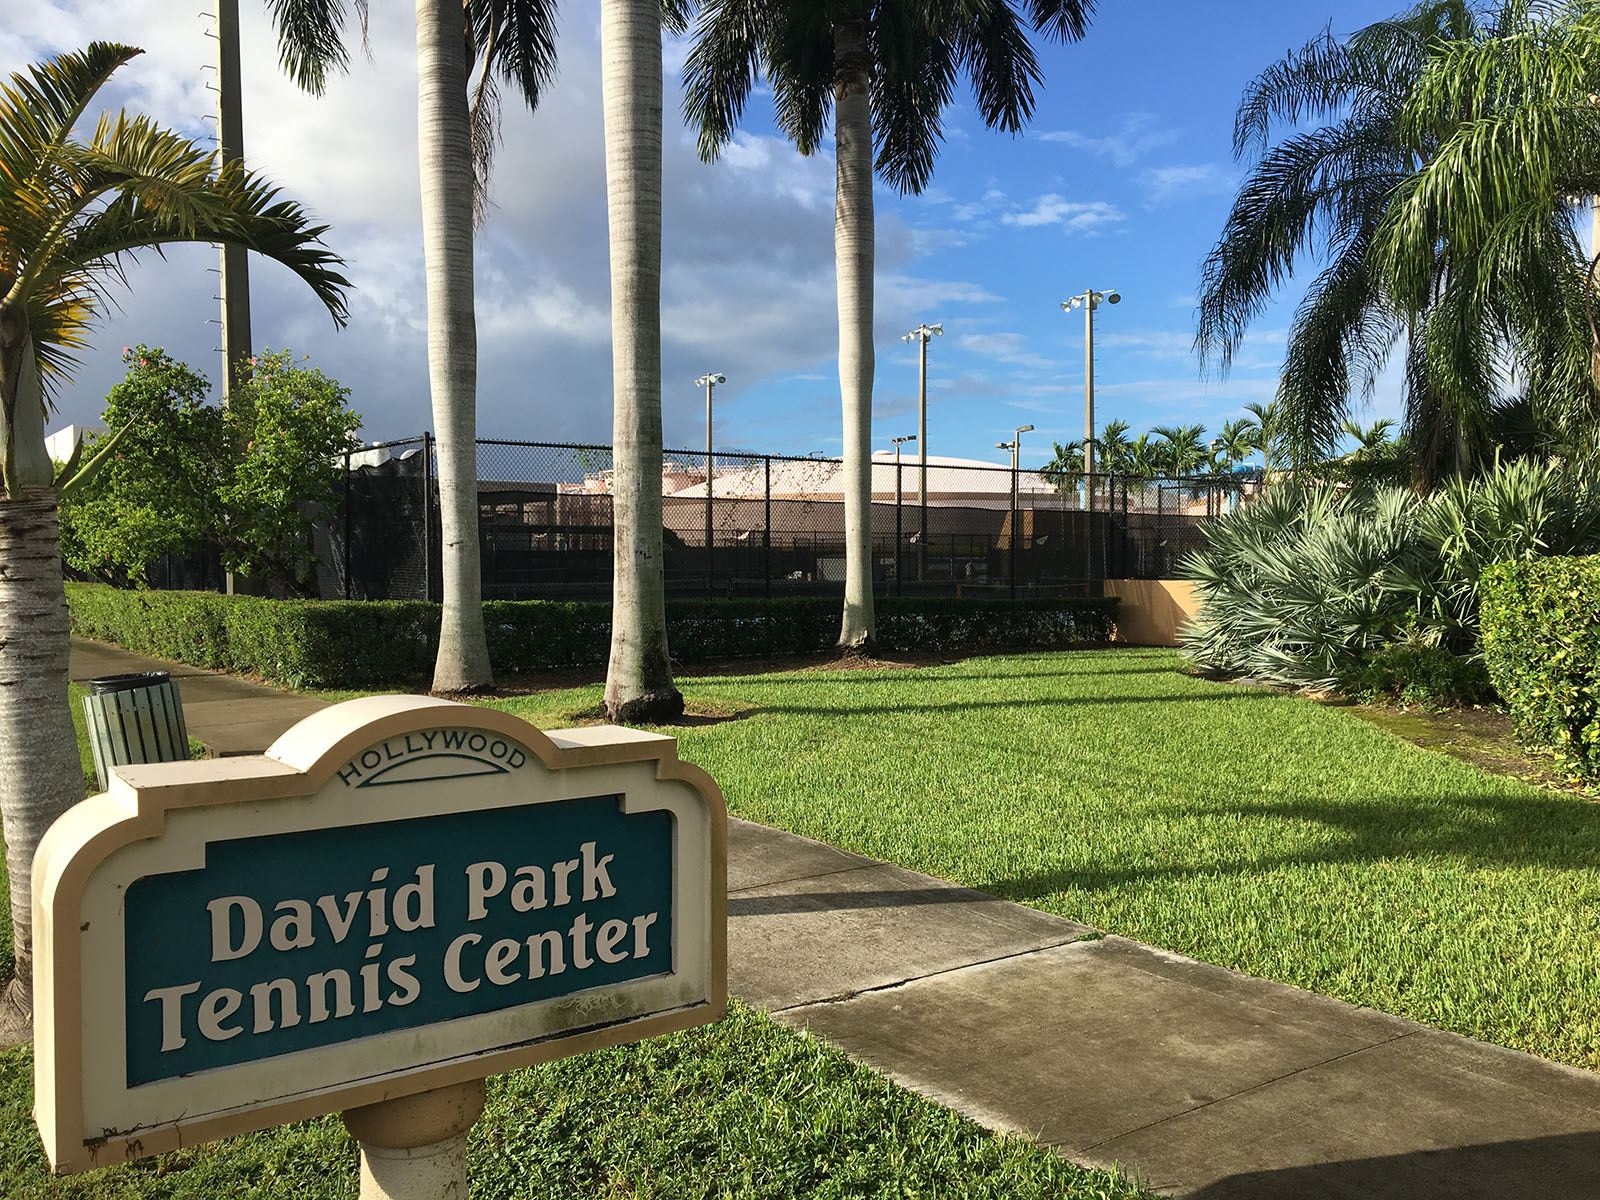 Hollywood Fl News >> Aceing Autism Launches The David Park Tennis Center Clinic